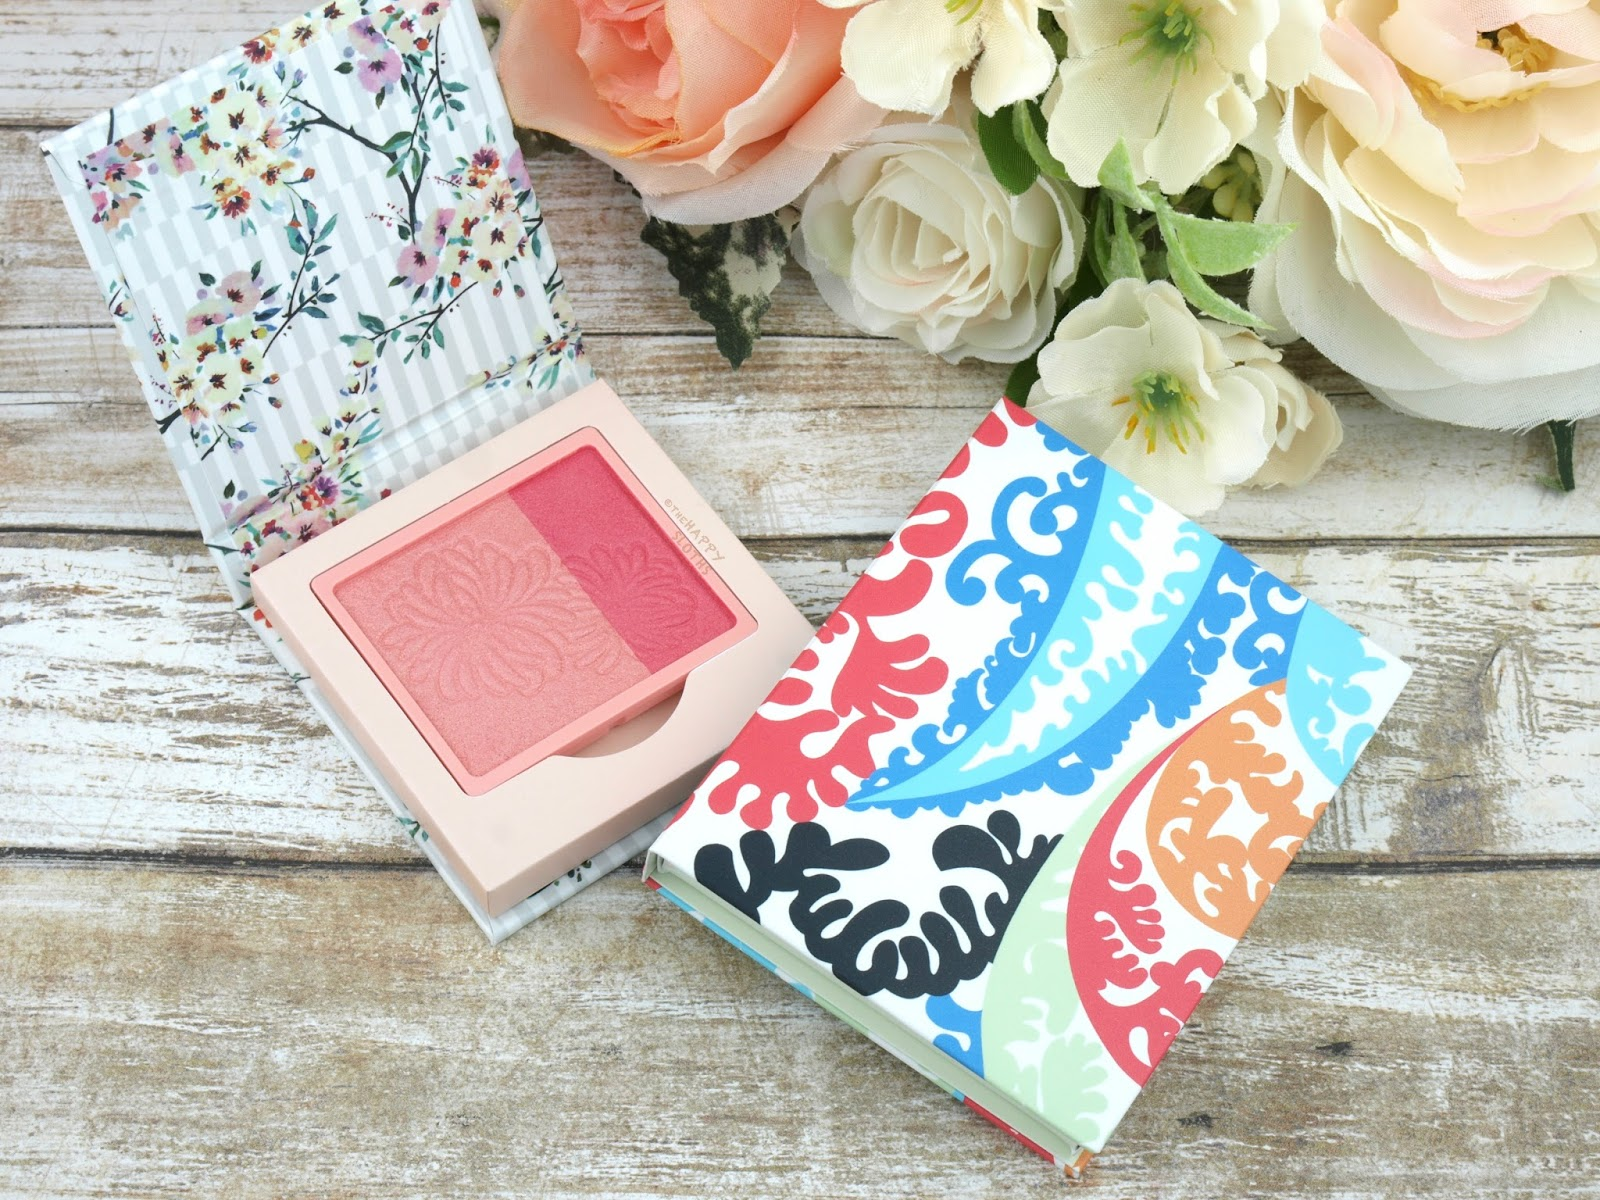 "Paul & Joe Spring 2017 Powder Blush in ""002 Mon Lapin"": Review and Swatches"